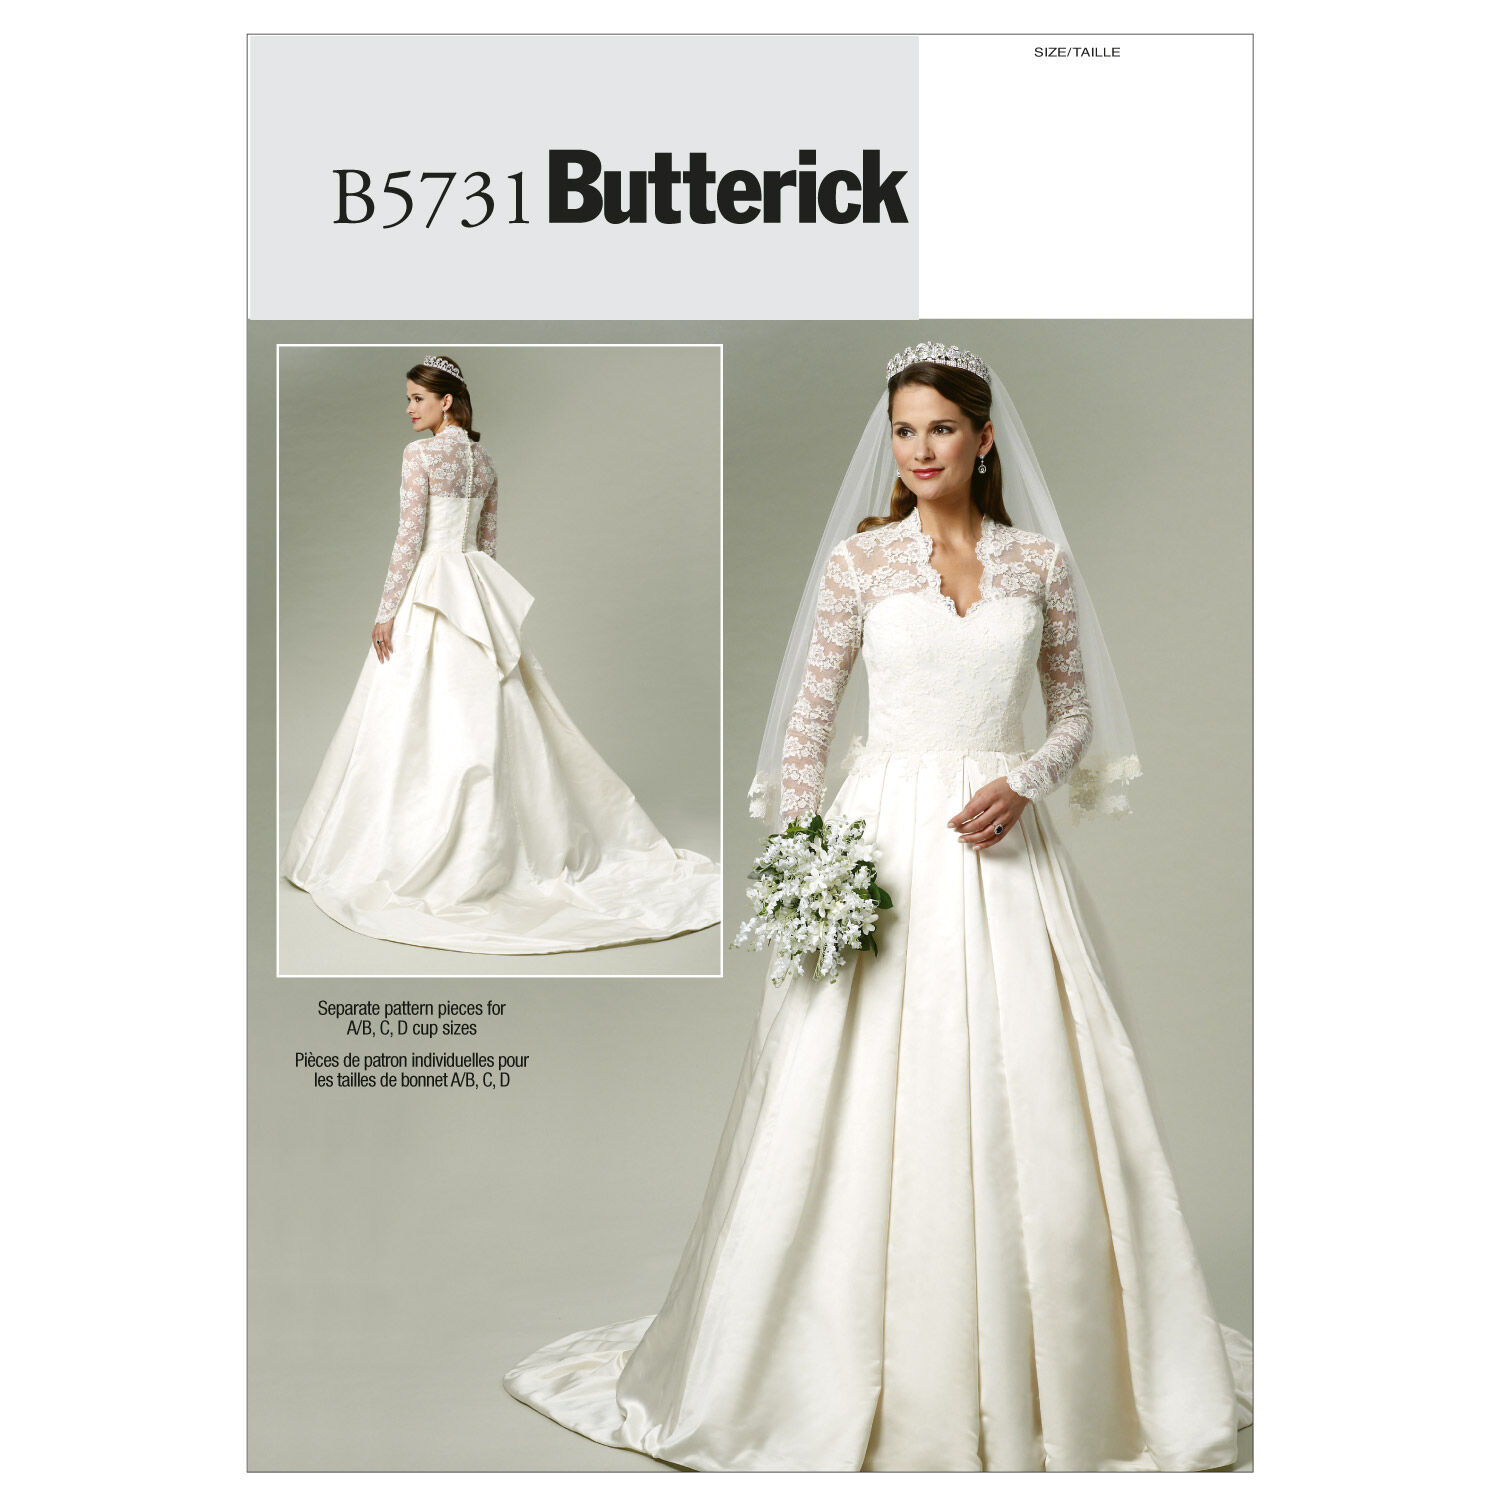 1940s Fabrics and Colors in Fashion Butterick Misses Bridal - B5731 $11.97 AT vintagedancer.com